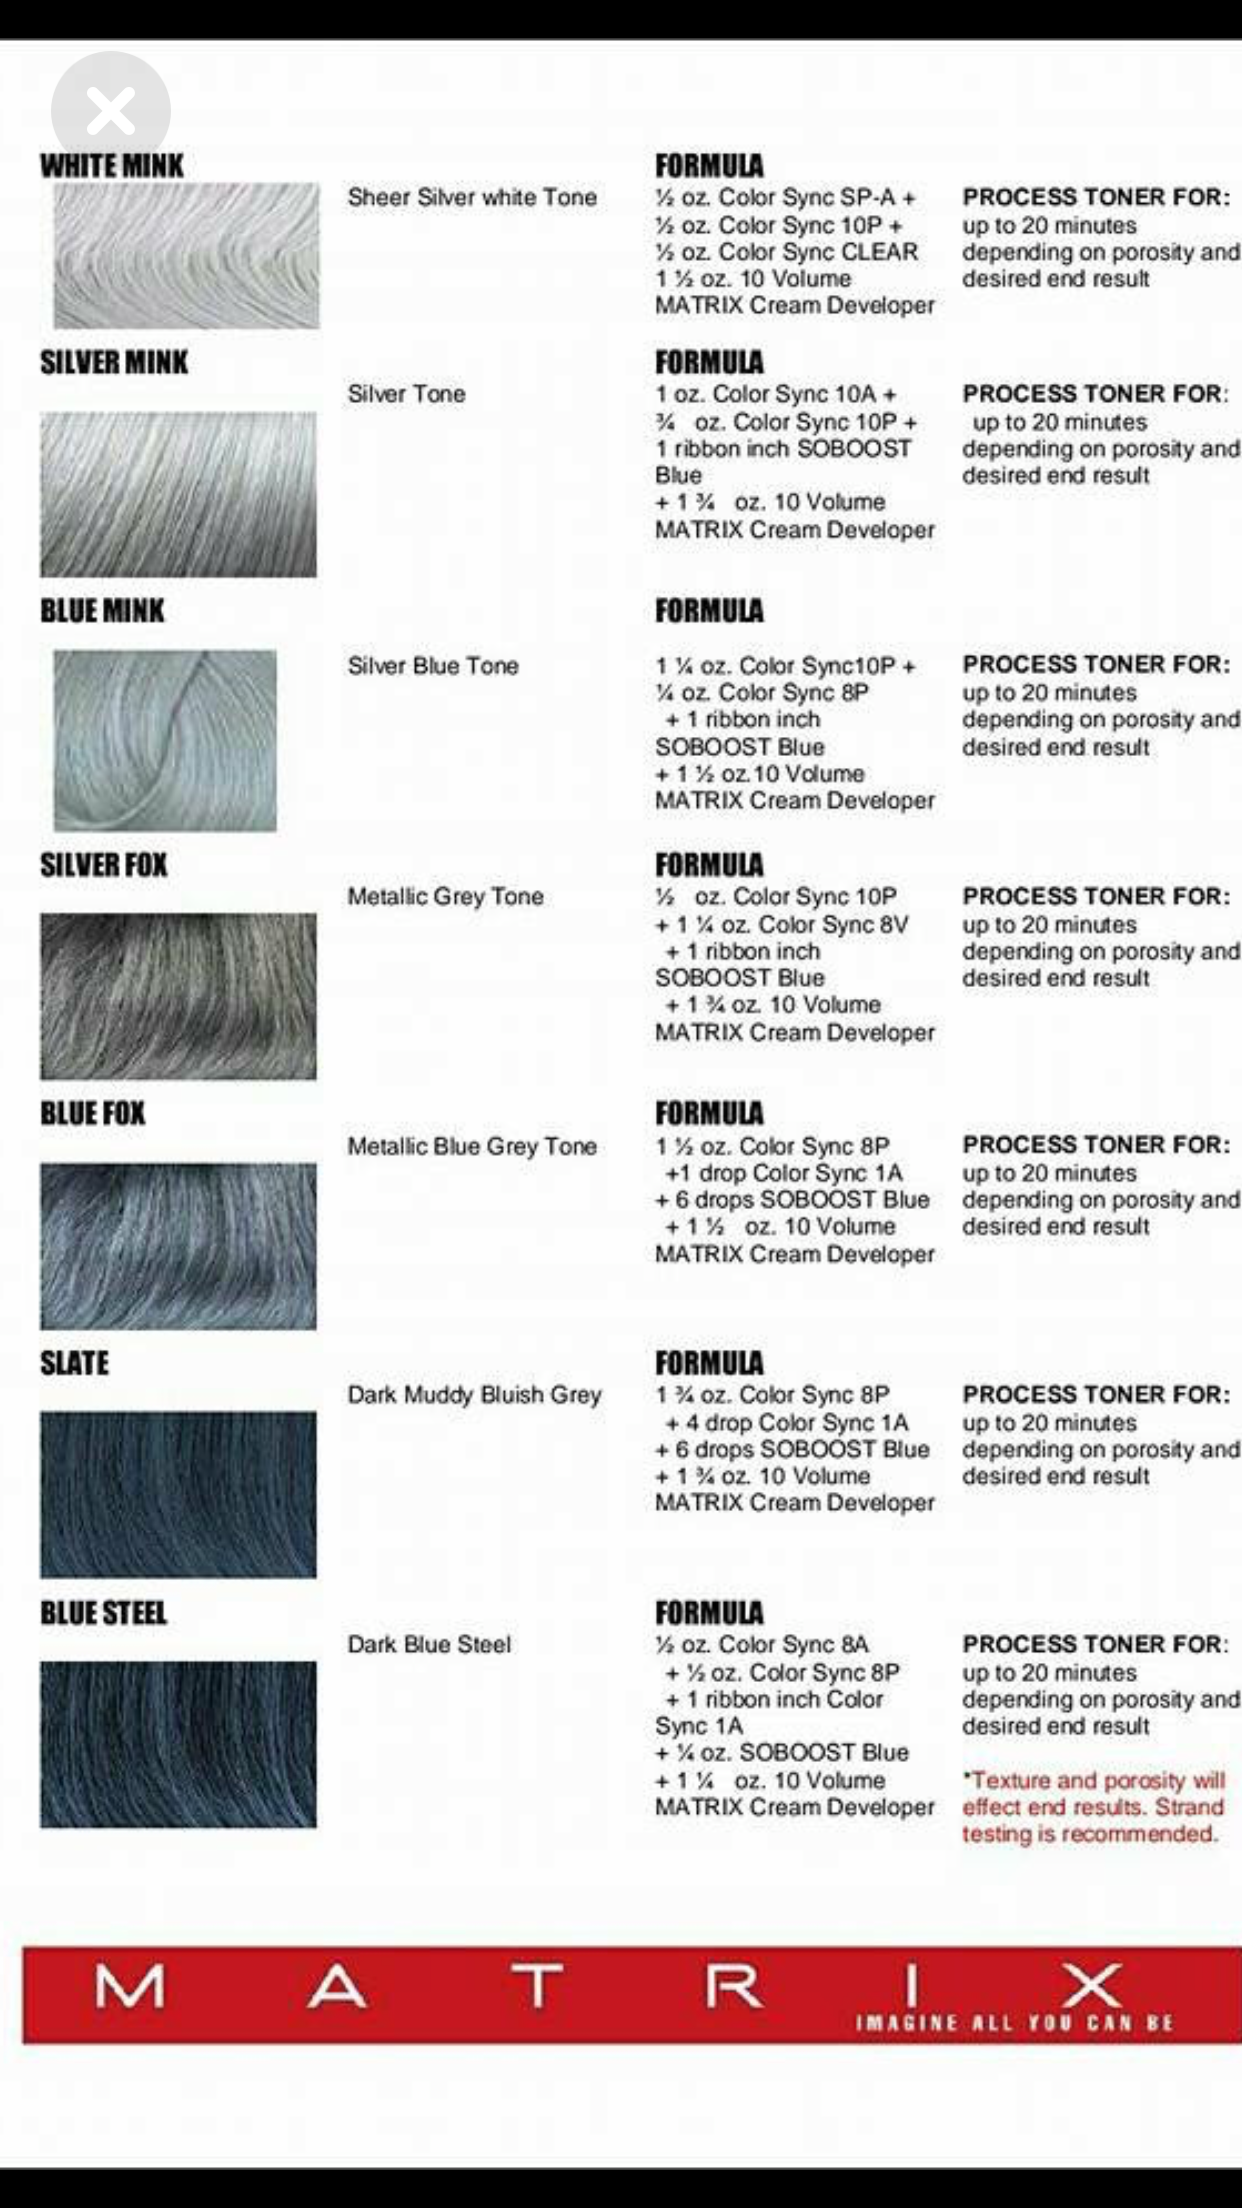 Google Image Result For Https I Pinimg Com Originals 63 E4 B4 63e4b4d64245786e34e4d99c88b803b6 Png In 2020 Matrix Color Color Pretty Hairstyles